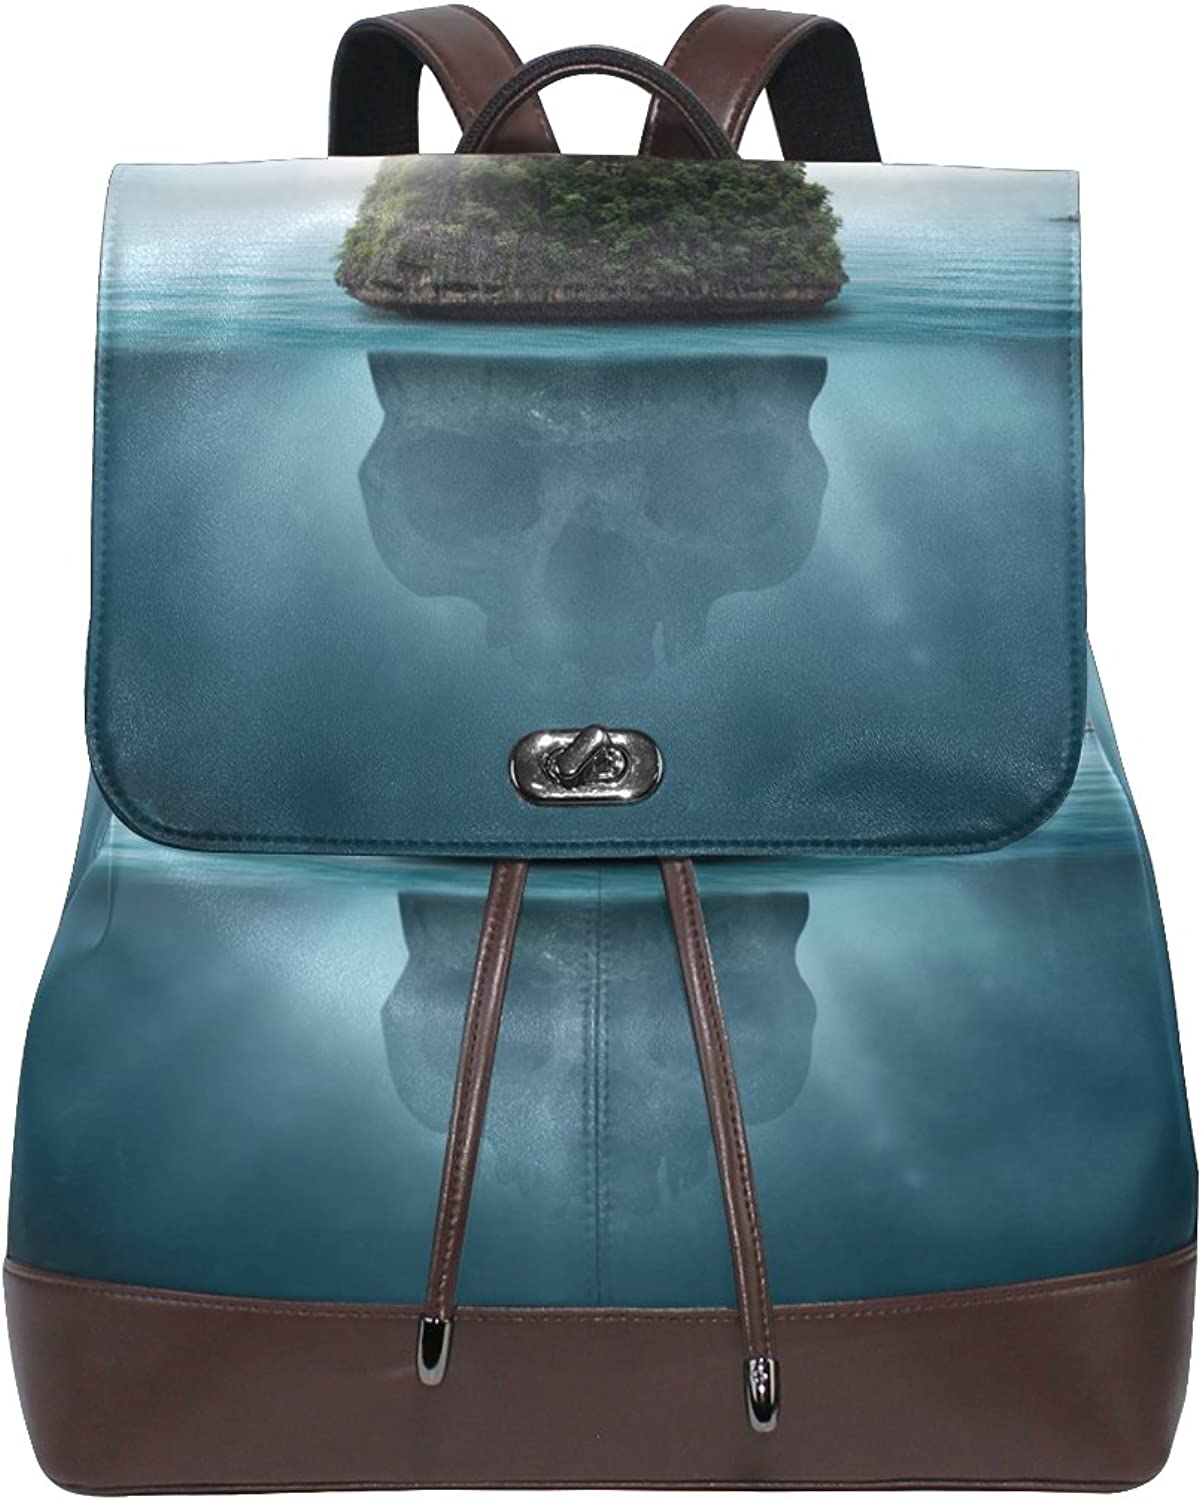 ALAZA Leather School Backpack Drawstring Island Skullfor Women and Girls Casual Laptop Duffel Bag